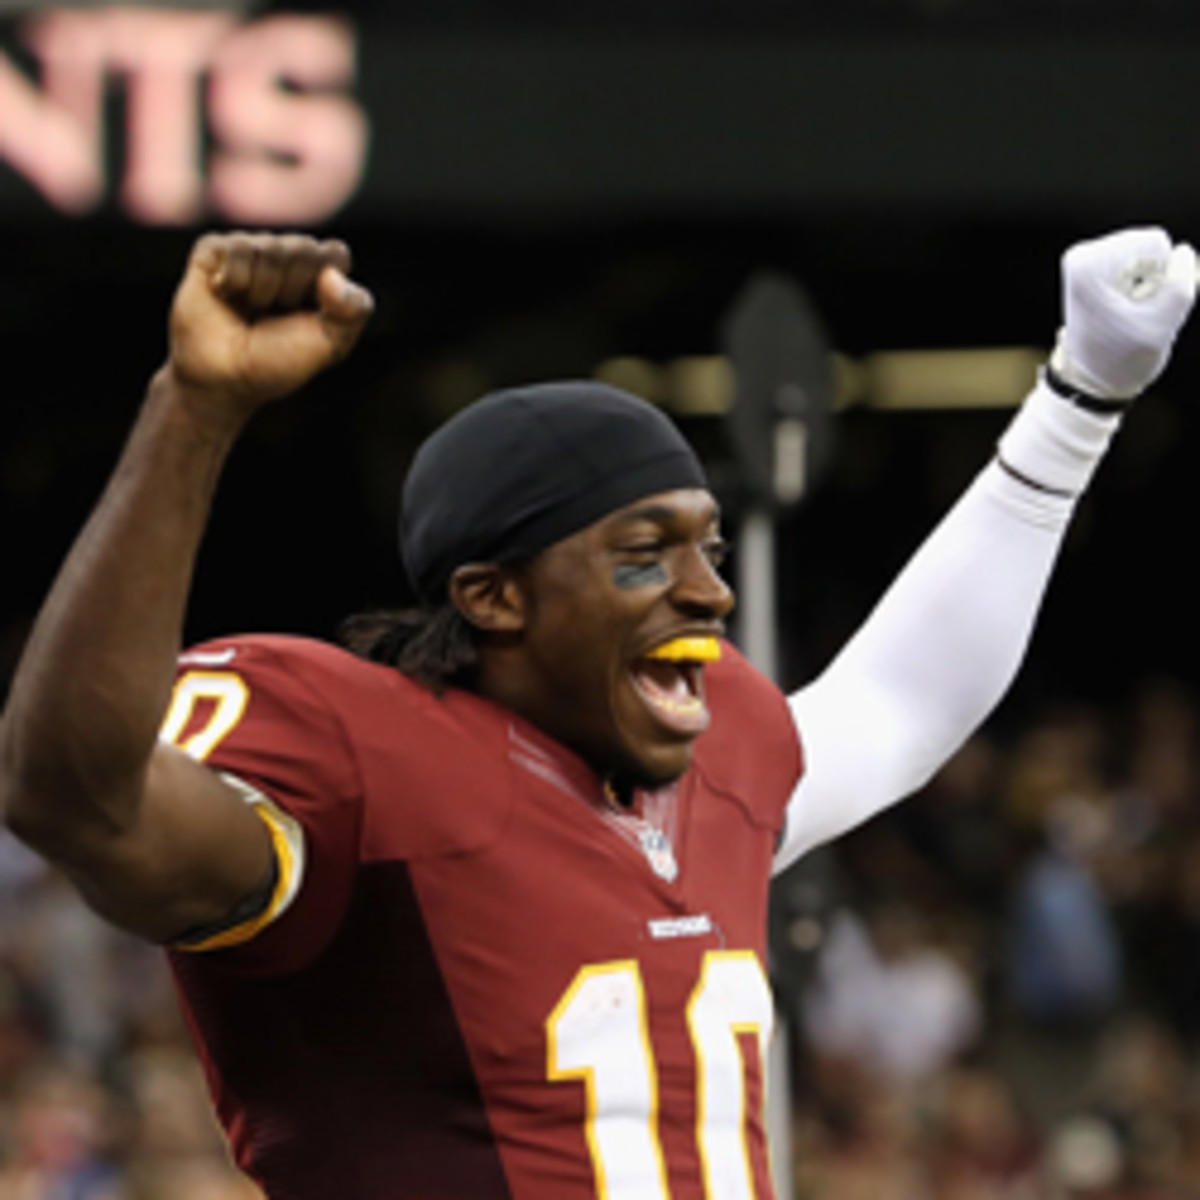 Redskins coach Mike Shanahan said  quarterback Robert Griffin will set a record for recovery from knee surgery. (Robert Martinez/Getty Images)